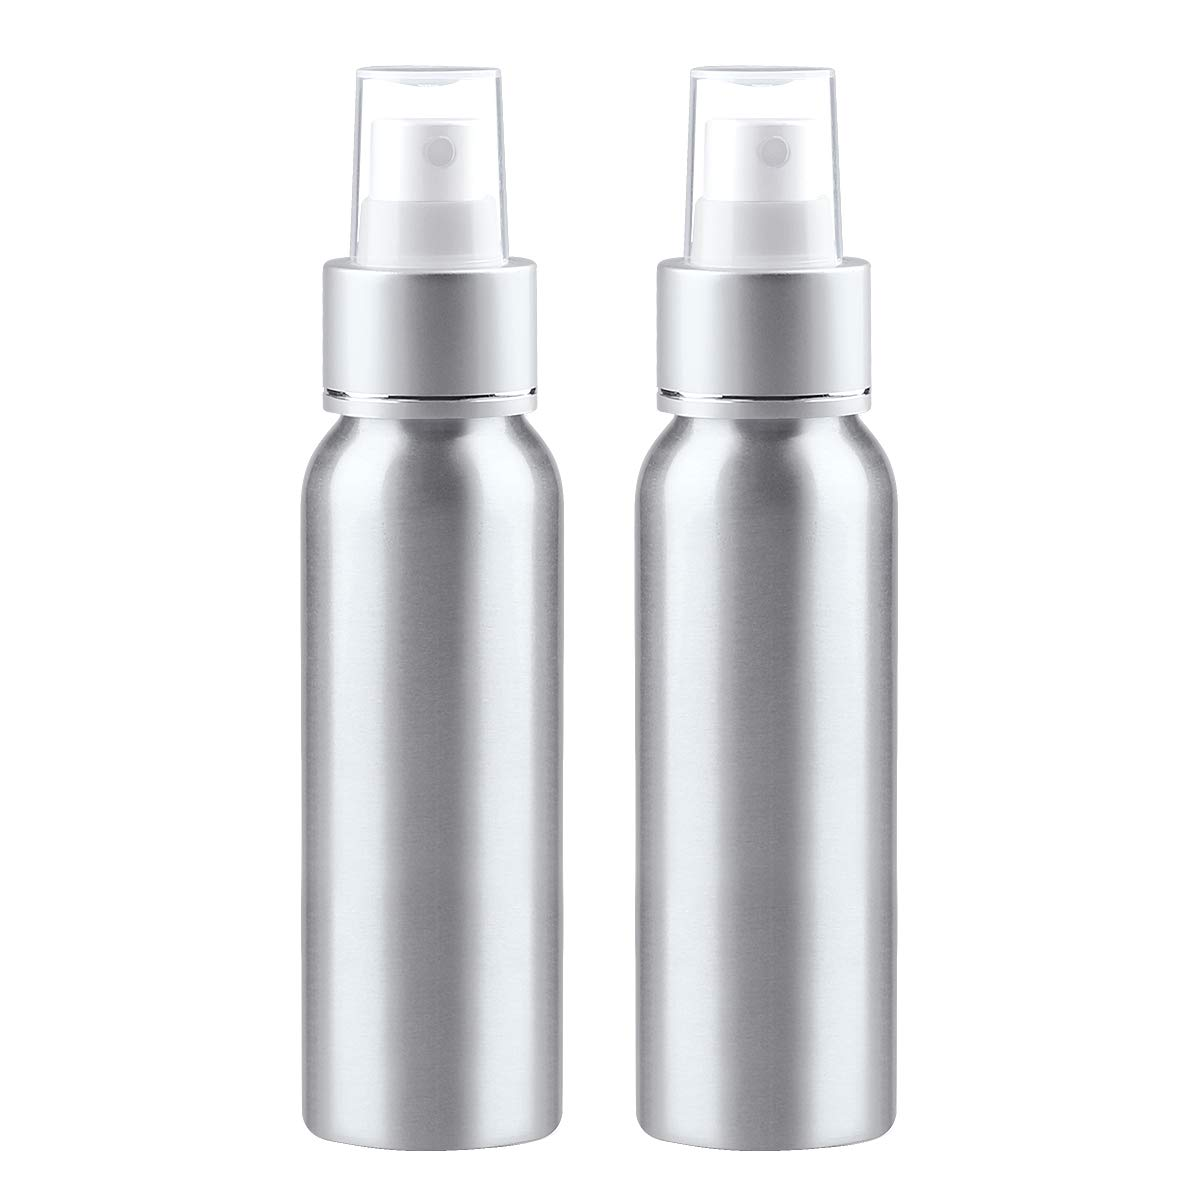 Sdootbeauty Aluminum Fine Mist Spray Bottle, 3.4oz 100ml Atomizer Perfume Bottles Refillable Cosmetic Travel Containers Empty Essential Oil Spray Bottles, Pack of 2